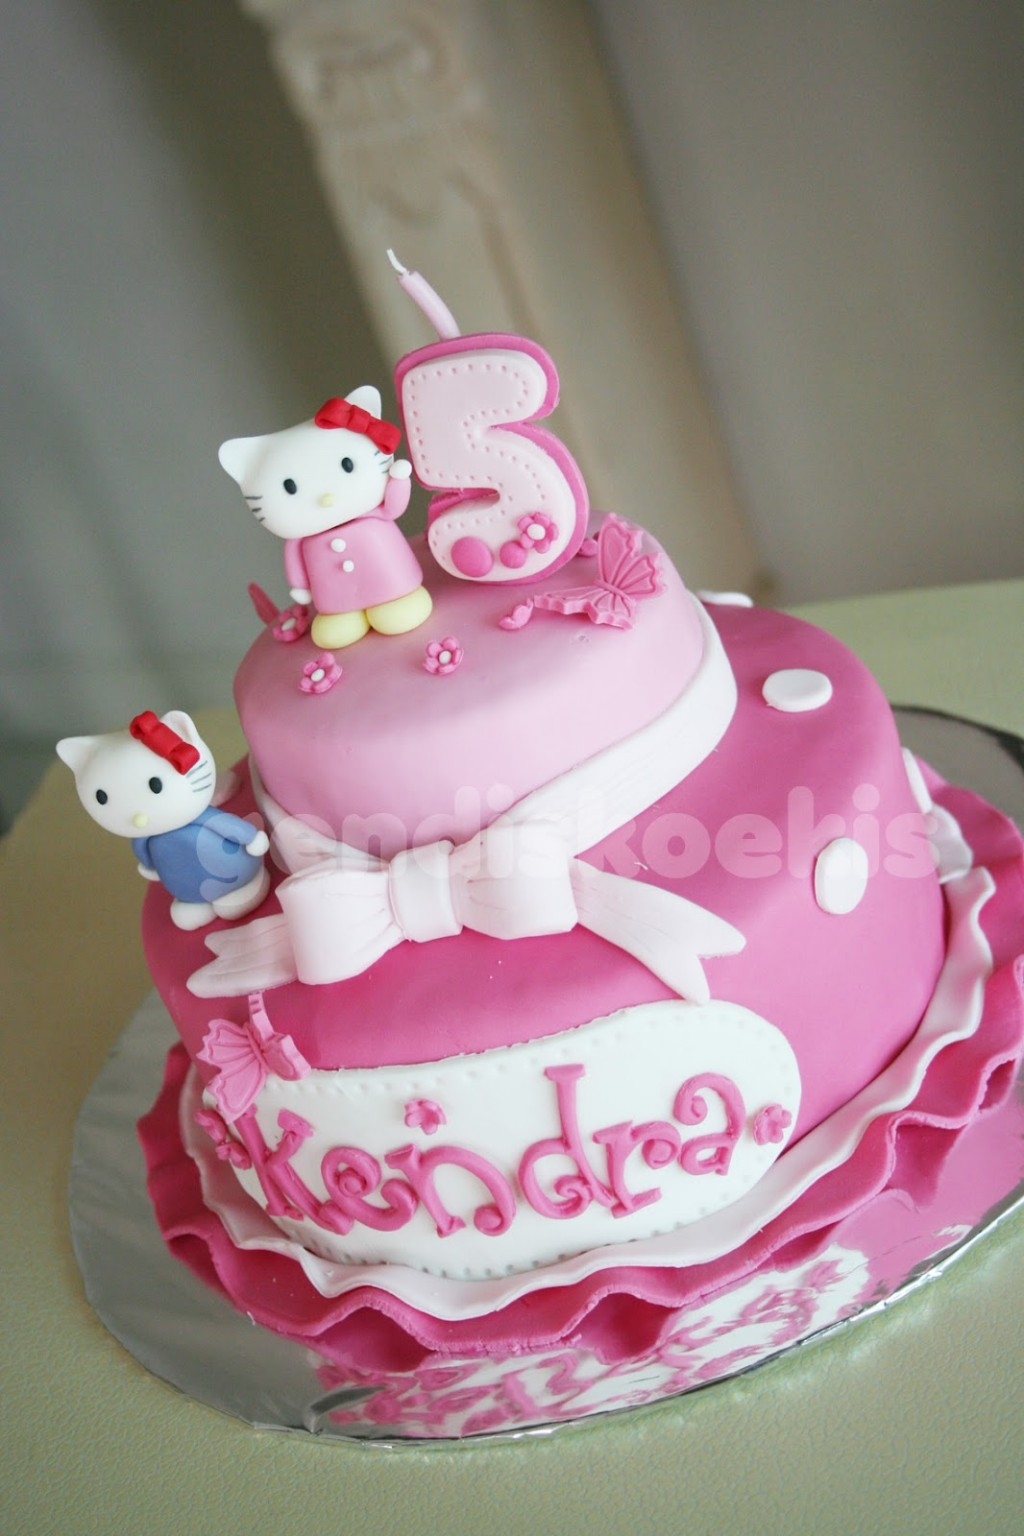 Pictures of hello kitty birthday cakes birthday cake cake ideas by large 1024 x 1536 file publicscrutiny Choice Image